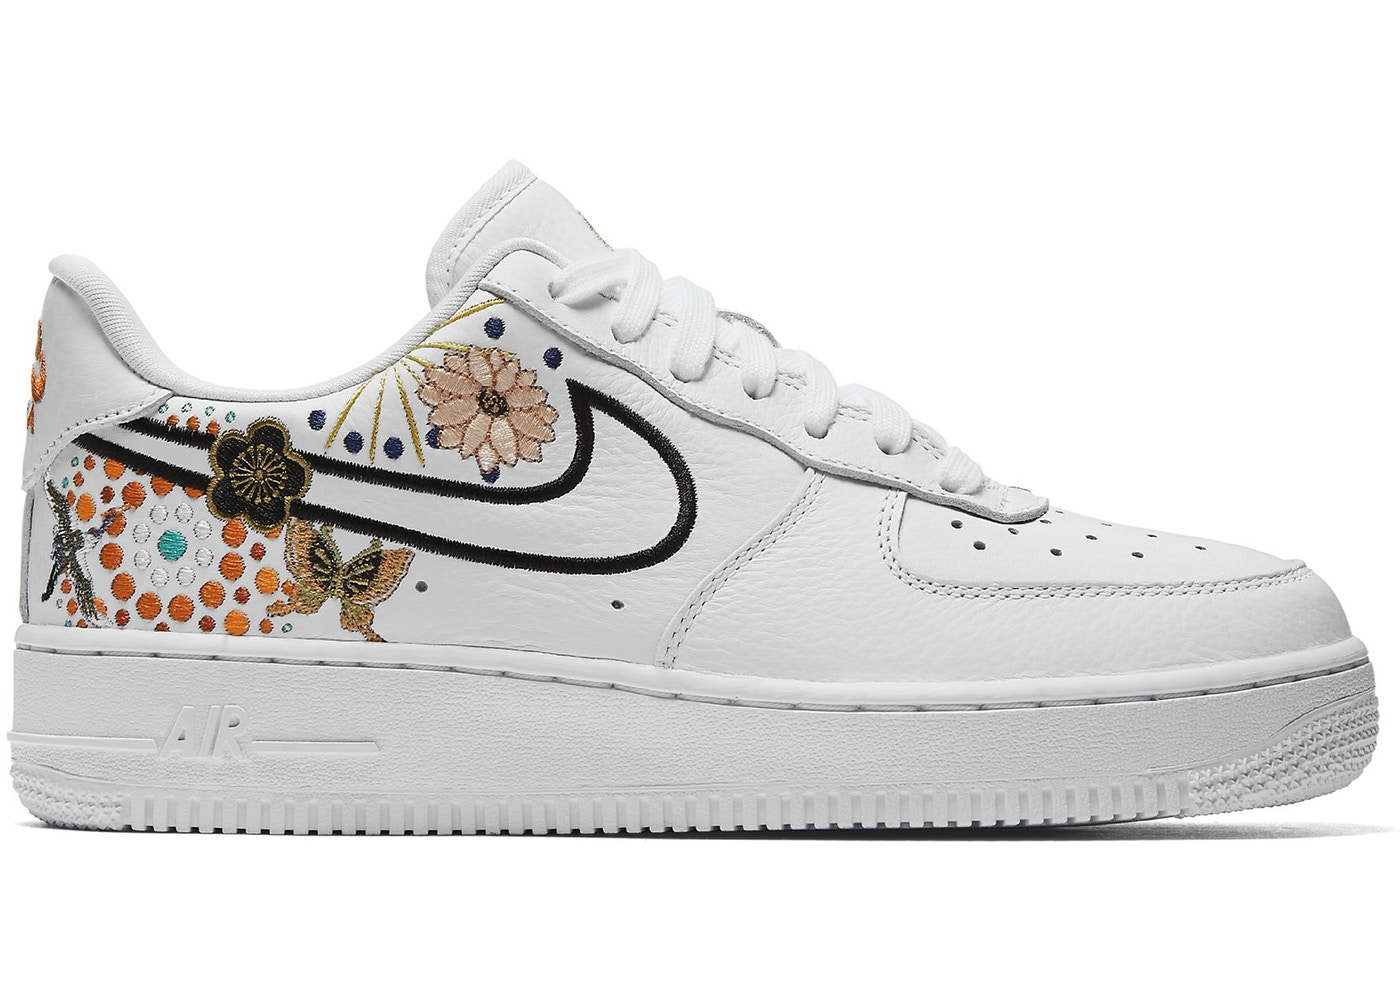 on sale 7a086 7bd86 Air Force 1 Low Lunar New Year 2018 (W) - AJ8298-100